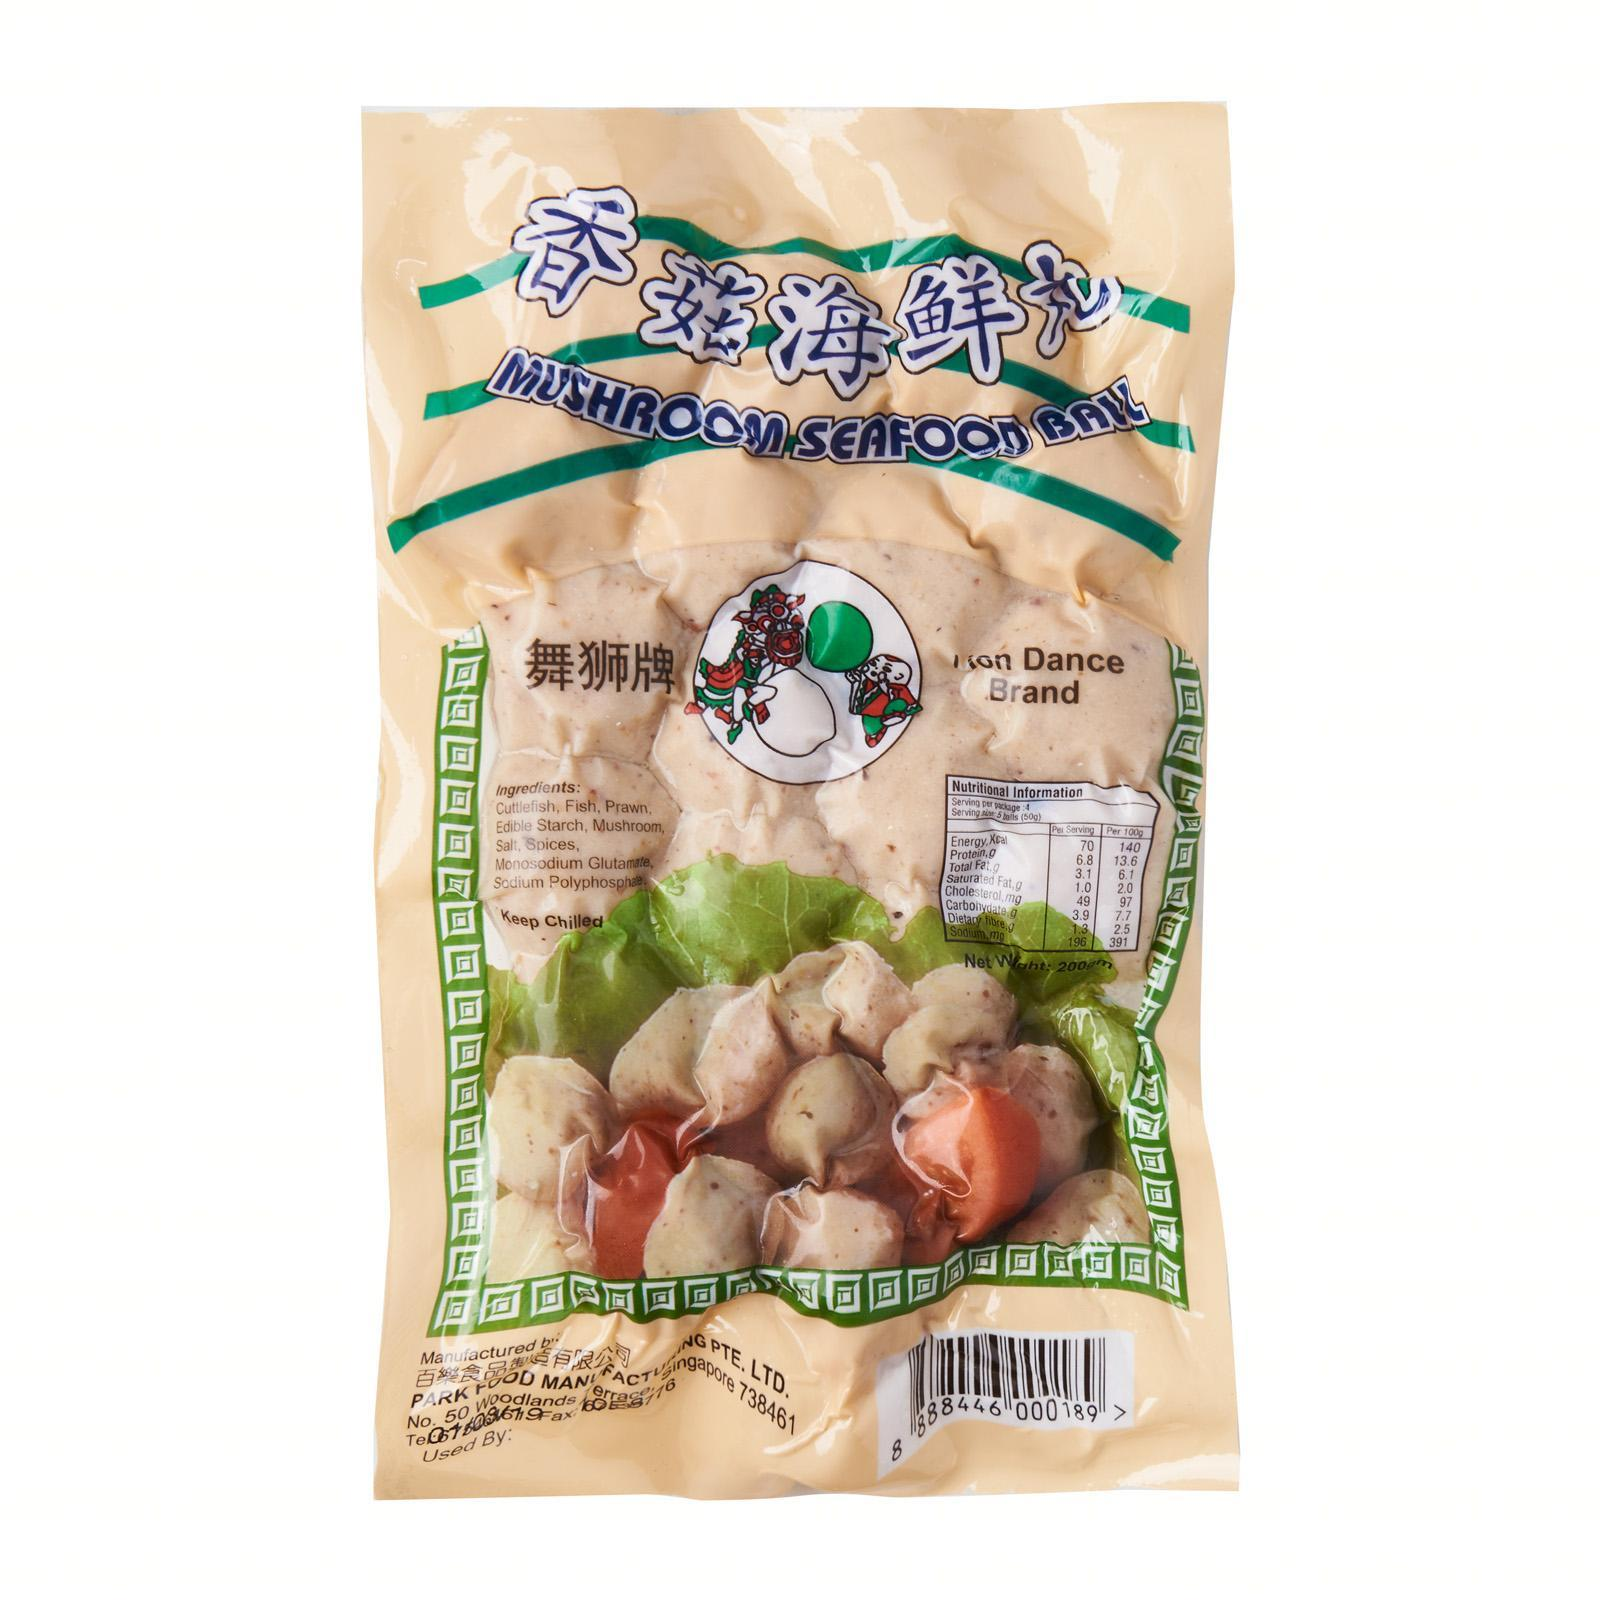 Lion Dance Brand Mushroom Seafood Ball - Frozen By Redmart.